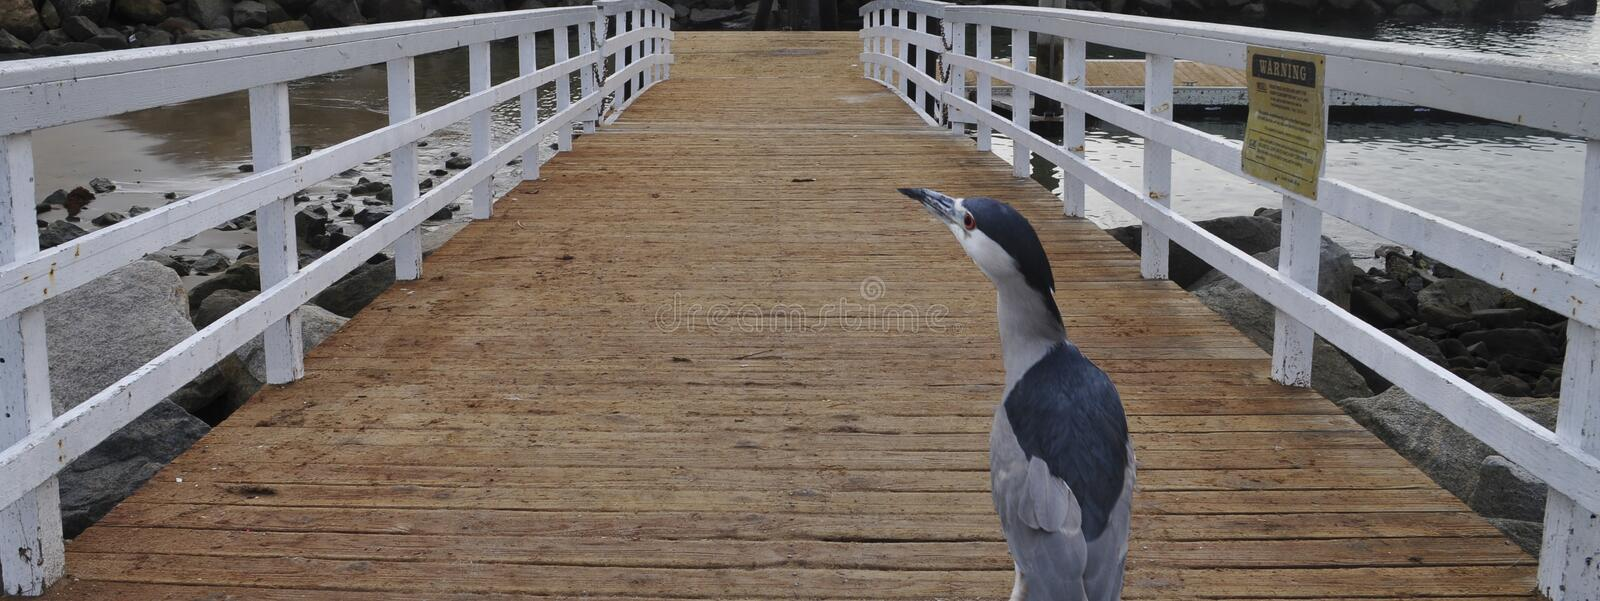 A bird looking onto the foreground royalty free stock images